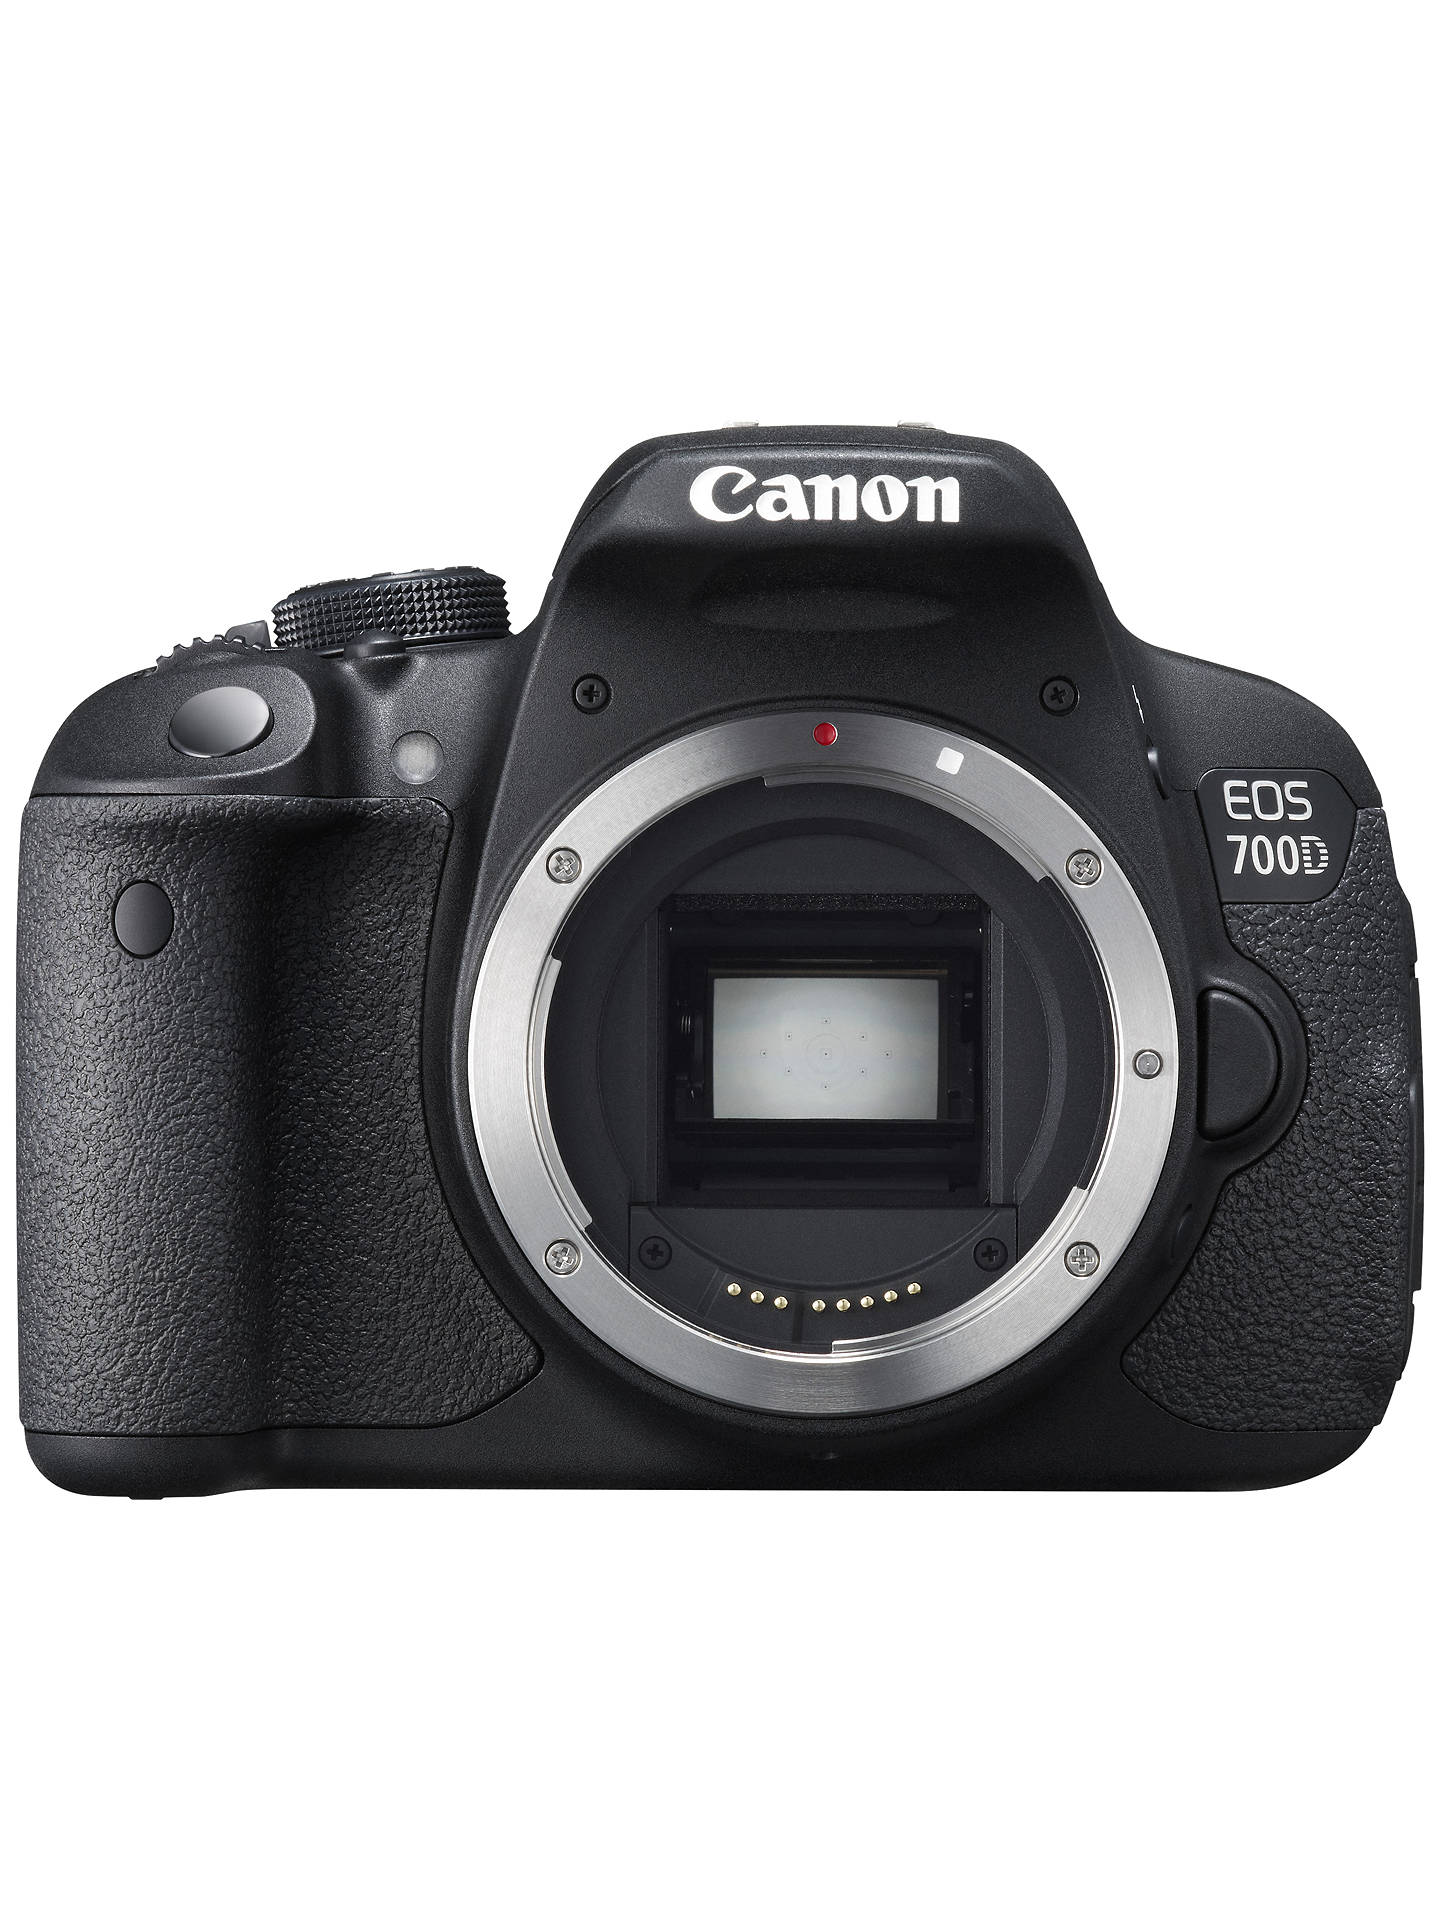 Canon Eos 700d Digital Slr Camera Hd 1080p 18mp 3 Lcd Touch 760d Body Only Wifi Buycanon